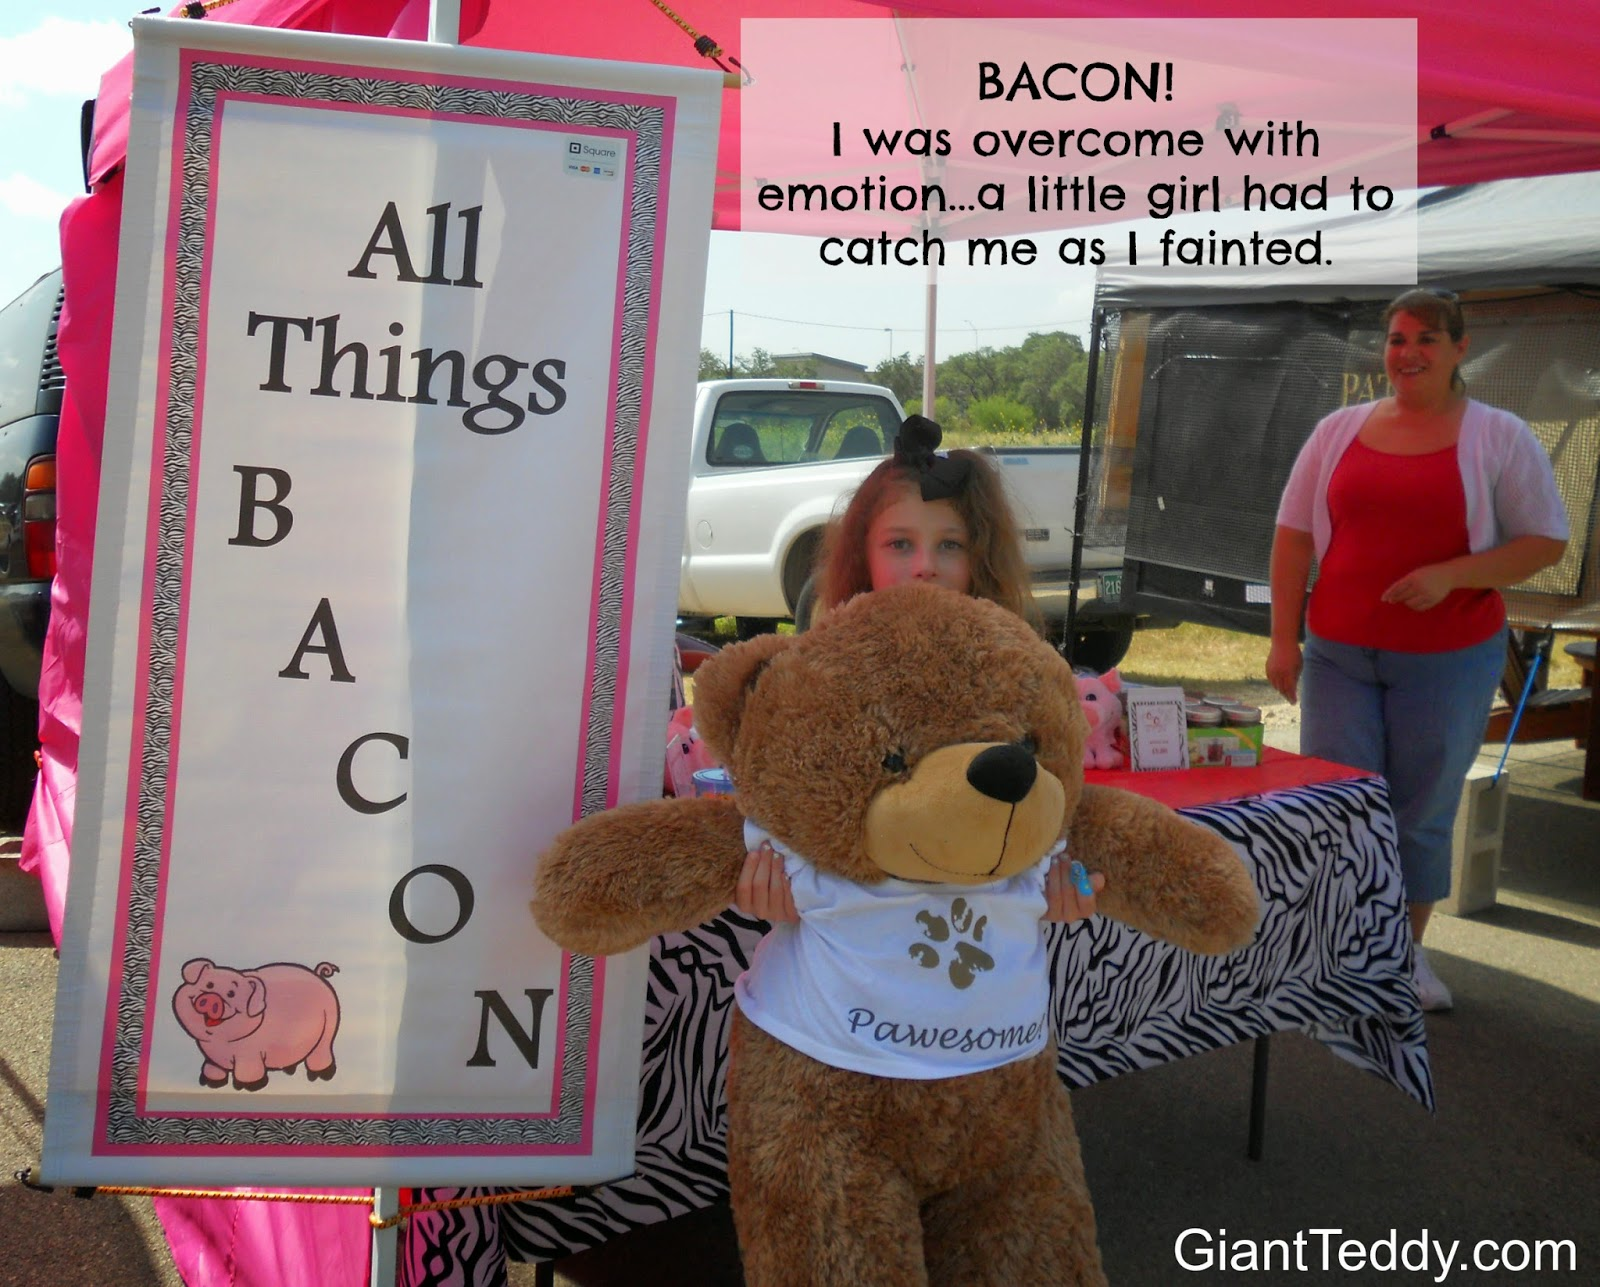 Giant Teddy bears are quite fond of bacon as a rule